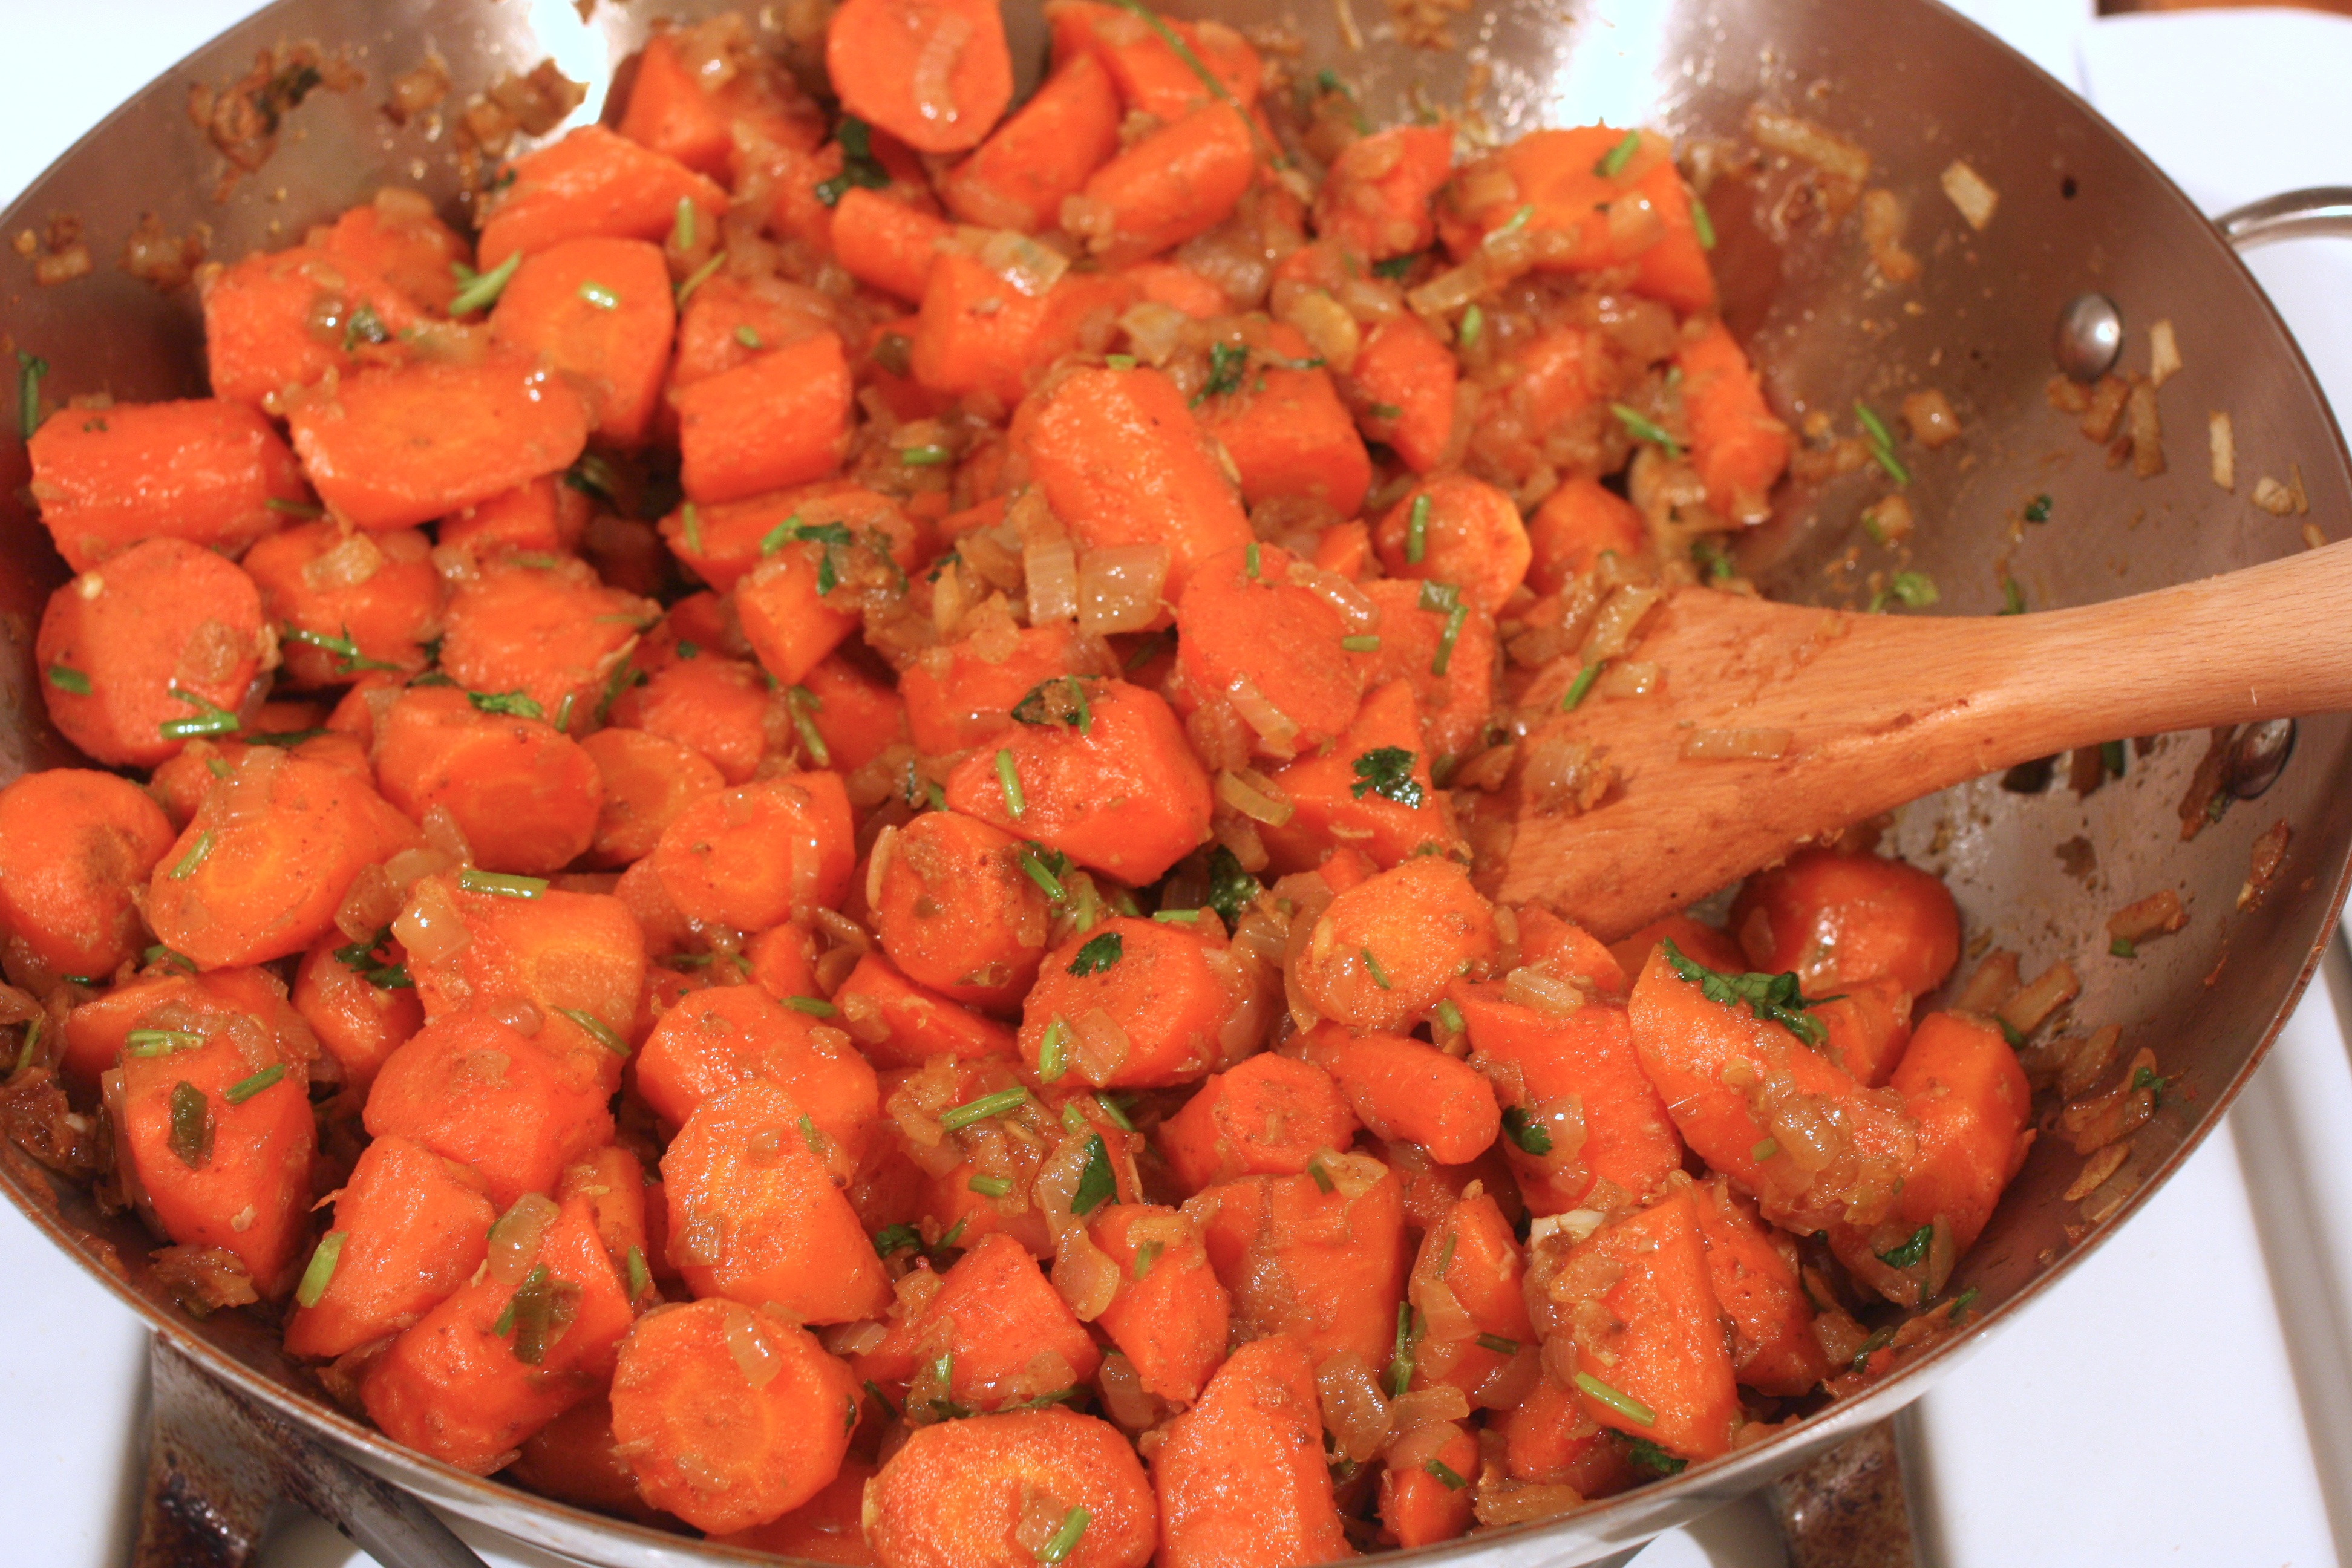 ... moroccan style spicy carrot get recipe moroccan style spicy carrot dip